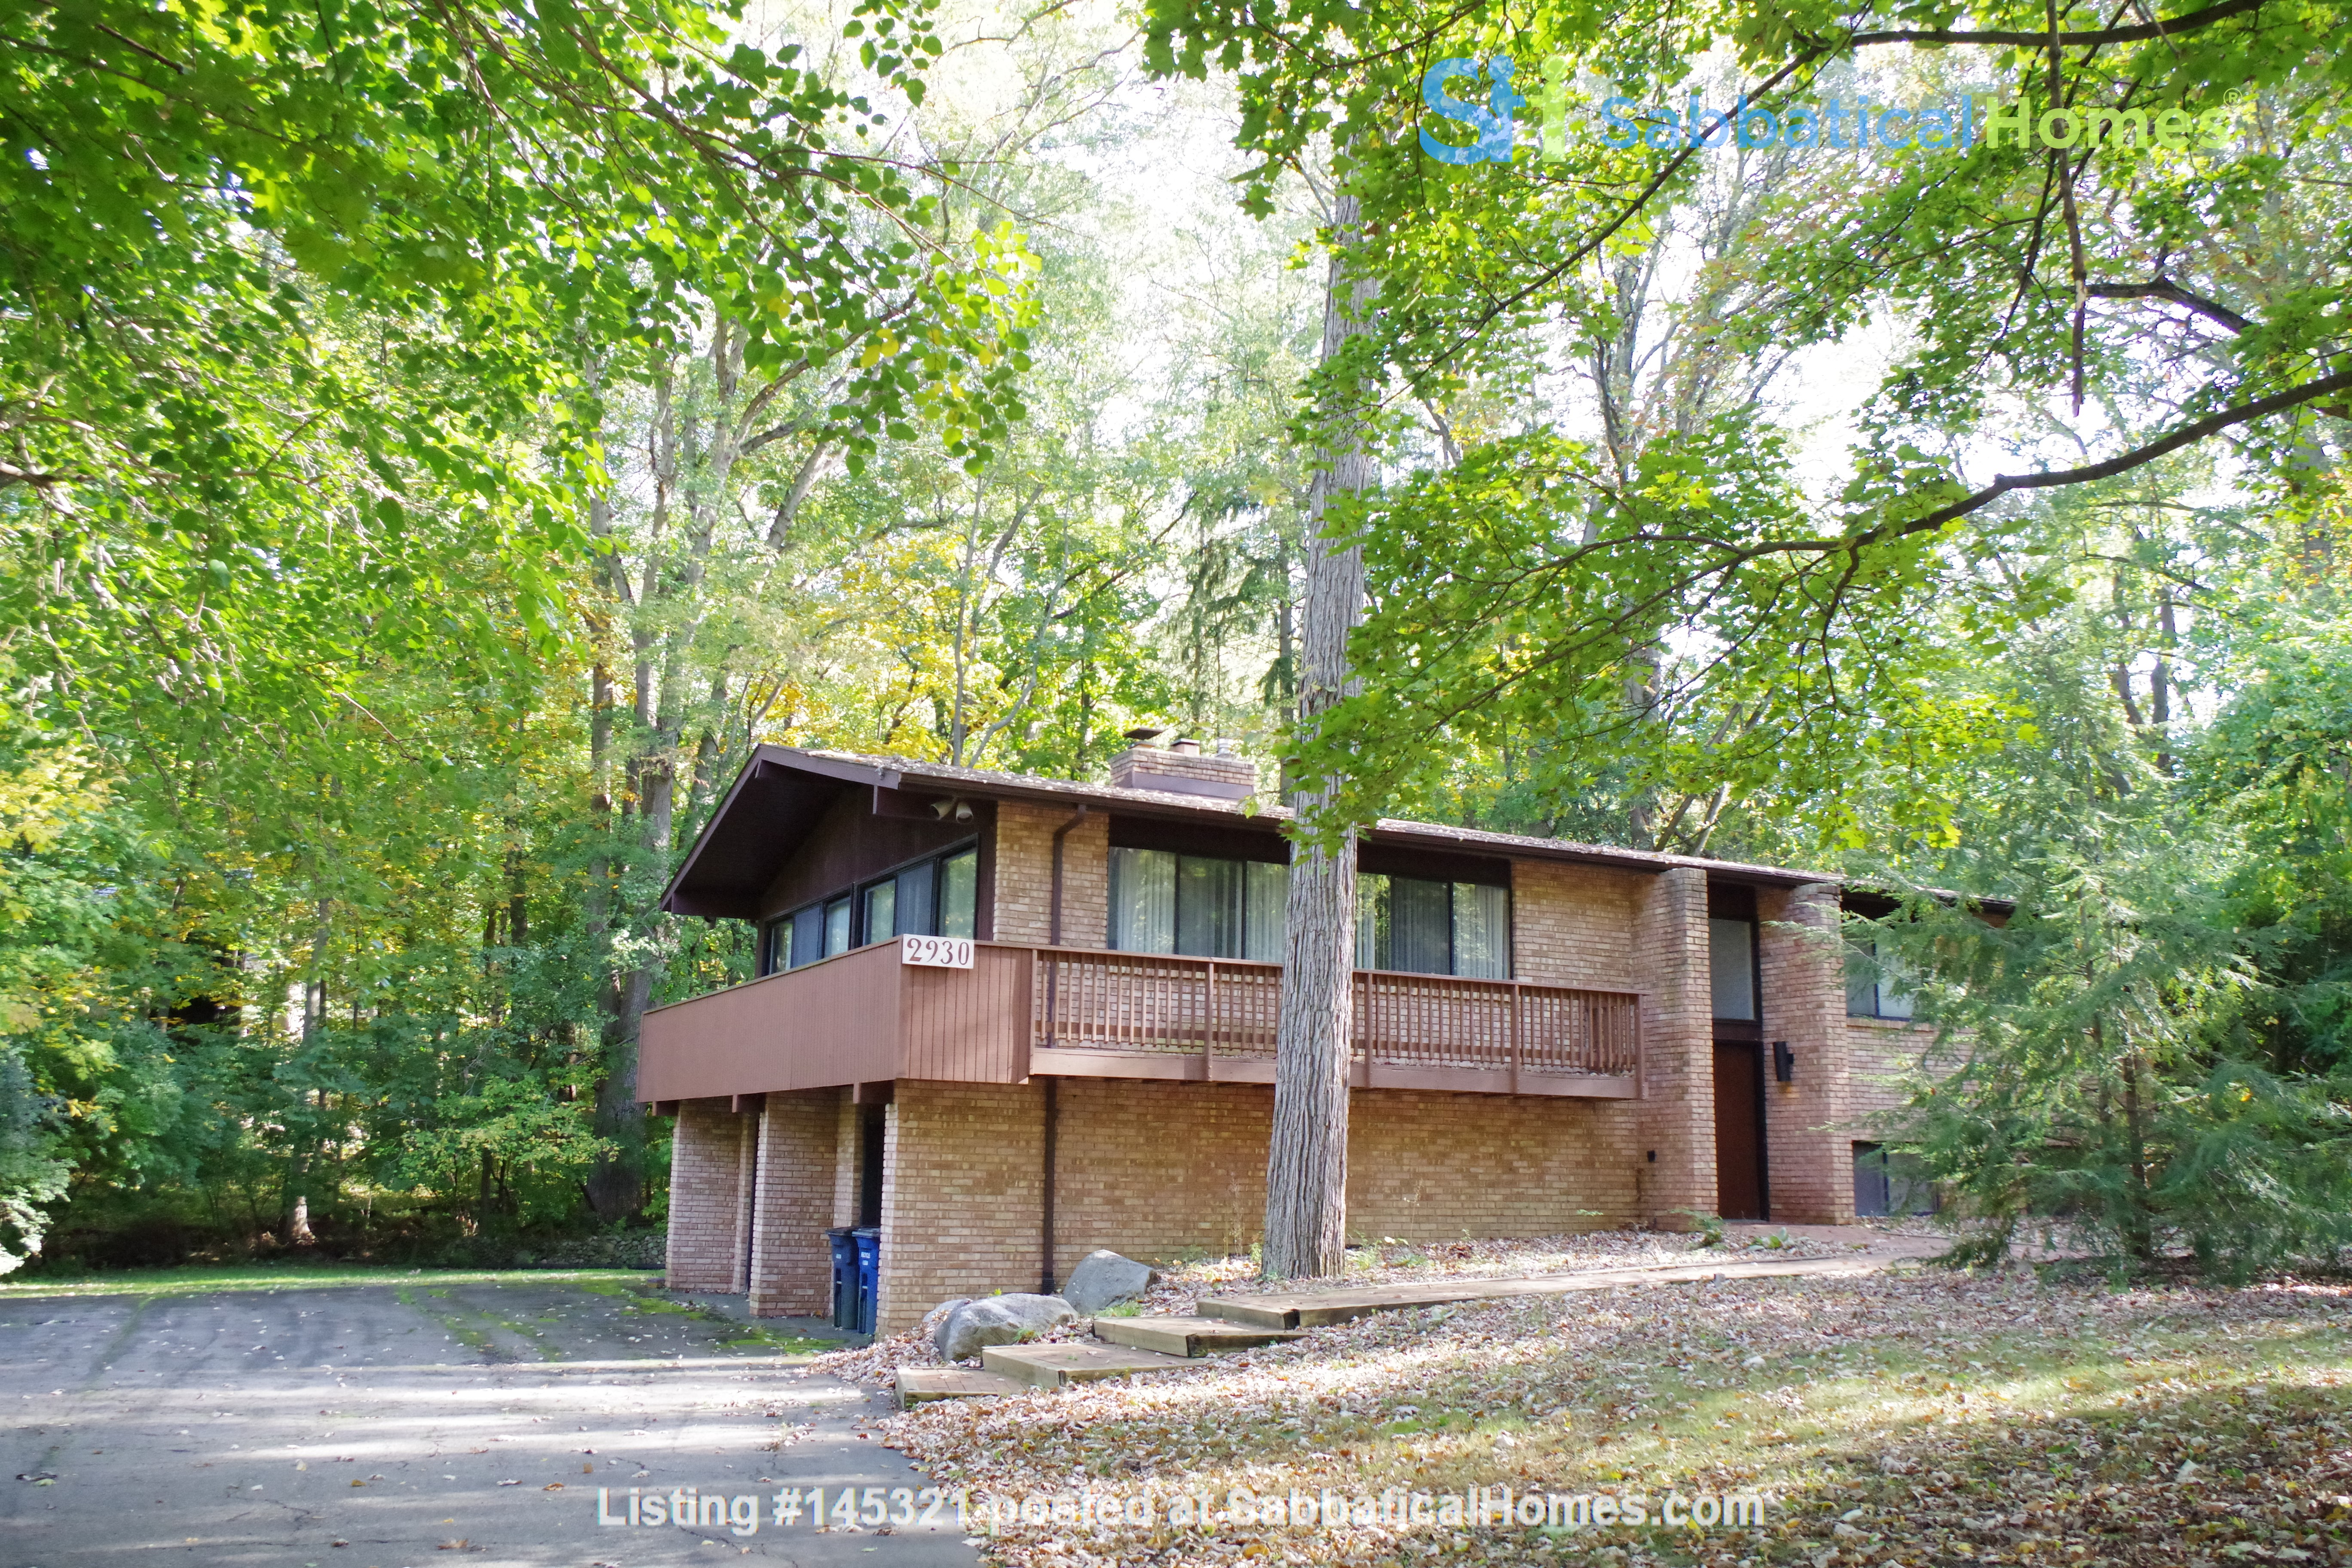 Lovely four bedroom house, wooded setting near UM Central campus & hospital Home Rental in Ann Arbor, Michigan, United States 1